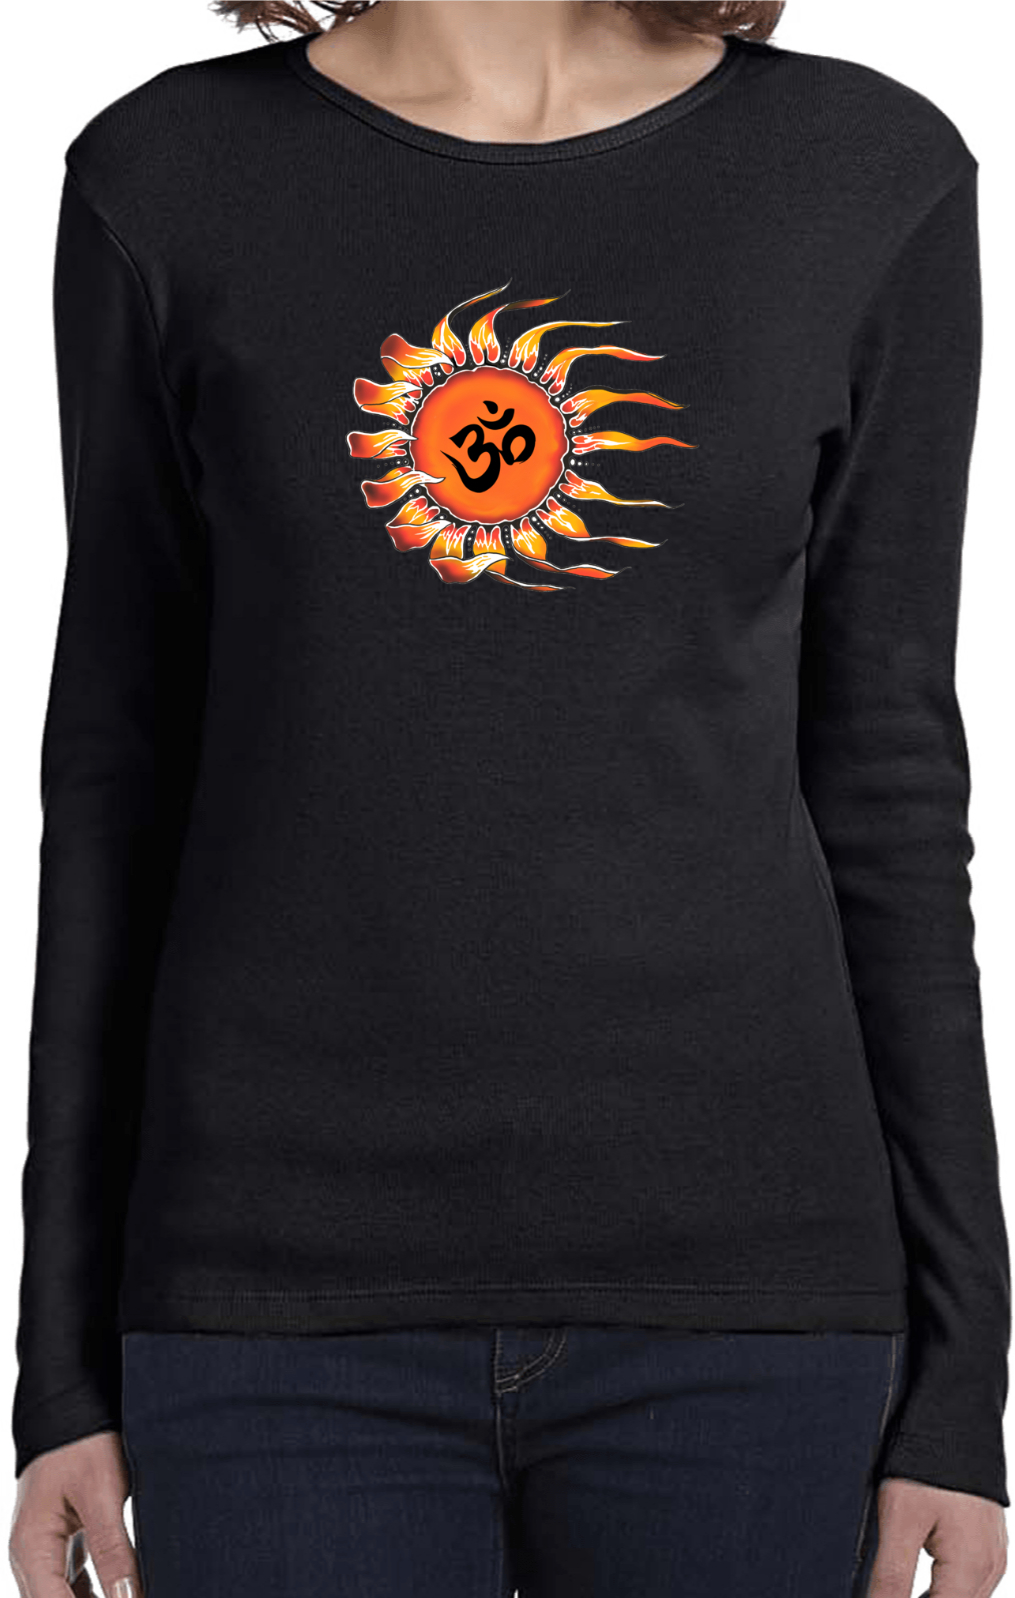 Ladies yoga shirt ohm sun long sleeve tee t shirt ohm Yoga shirts with sleeves